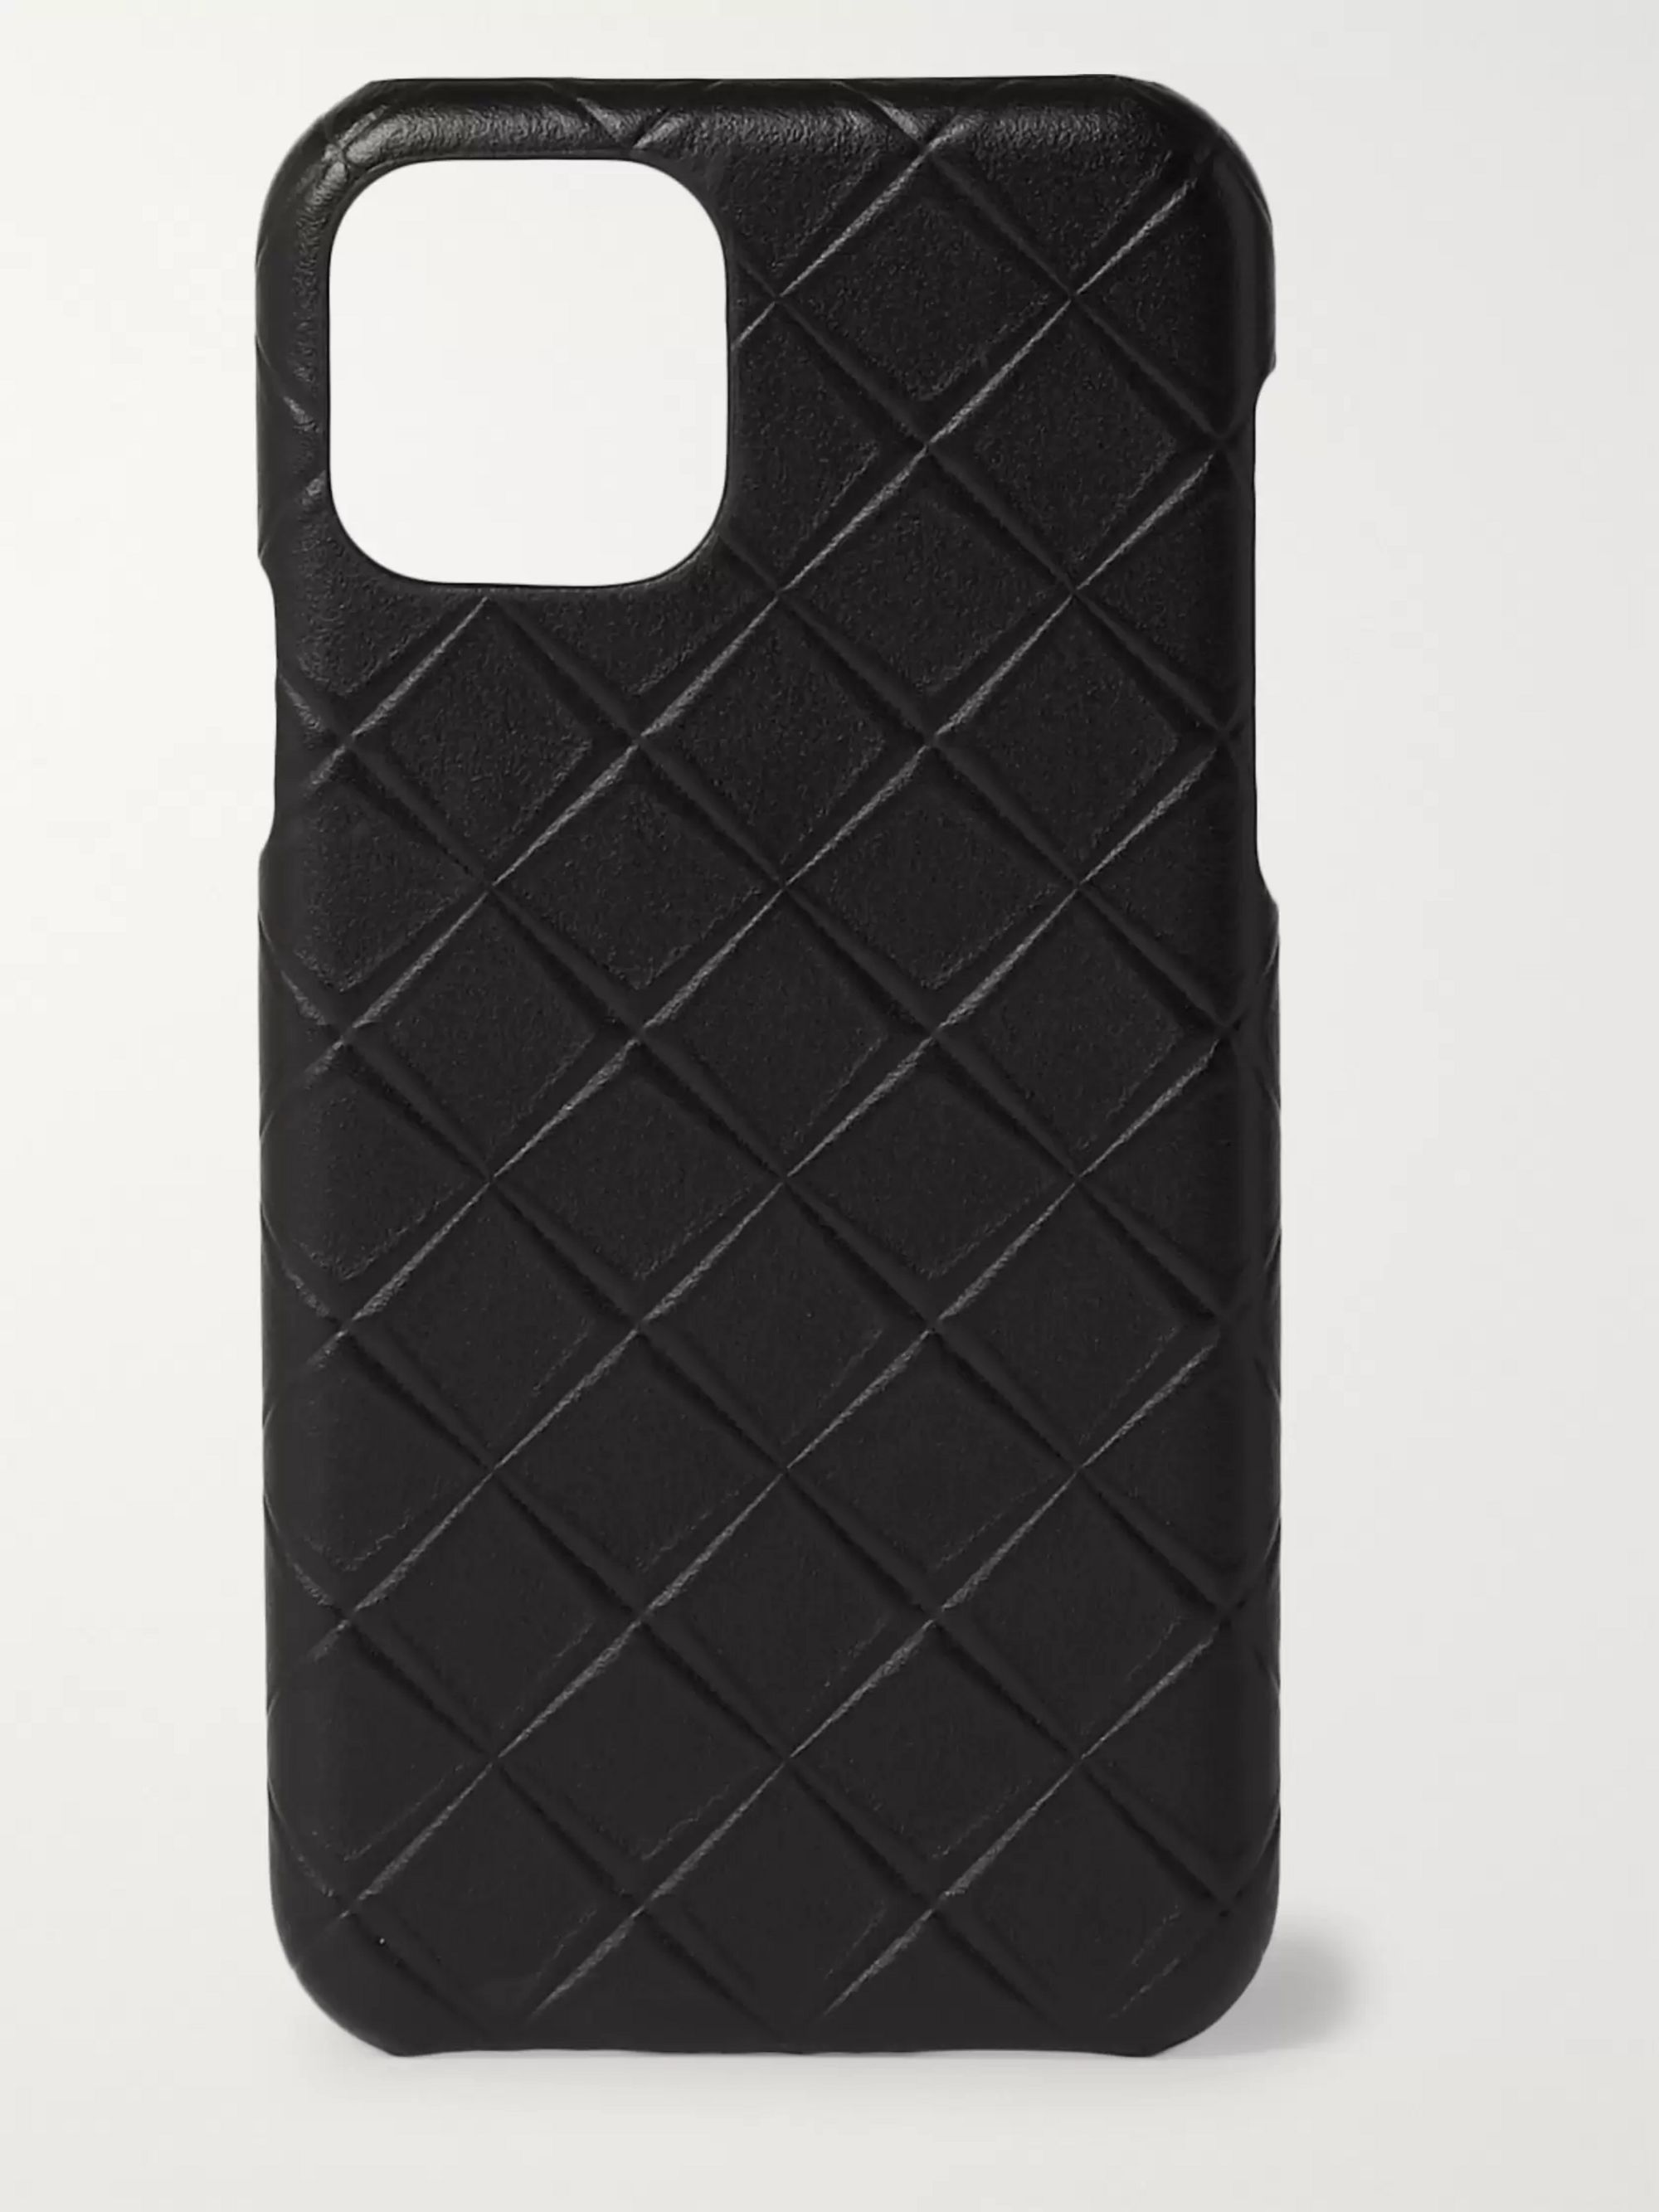 BOTTEGA VENETA Intrecciato-Embossed Leather iPhone 11 Case